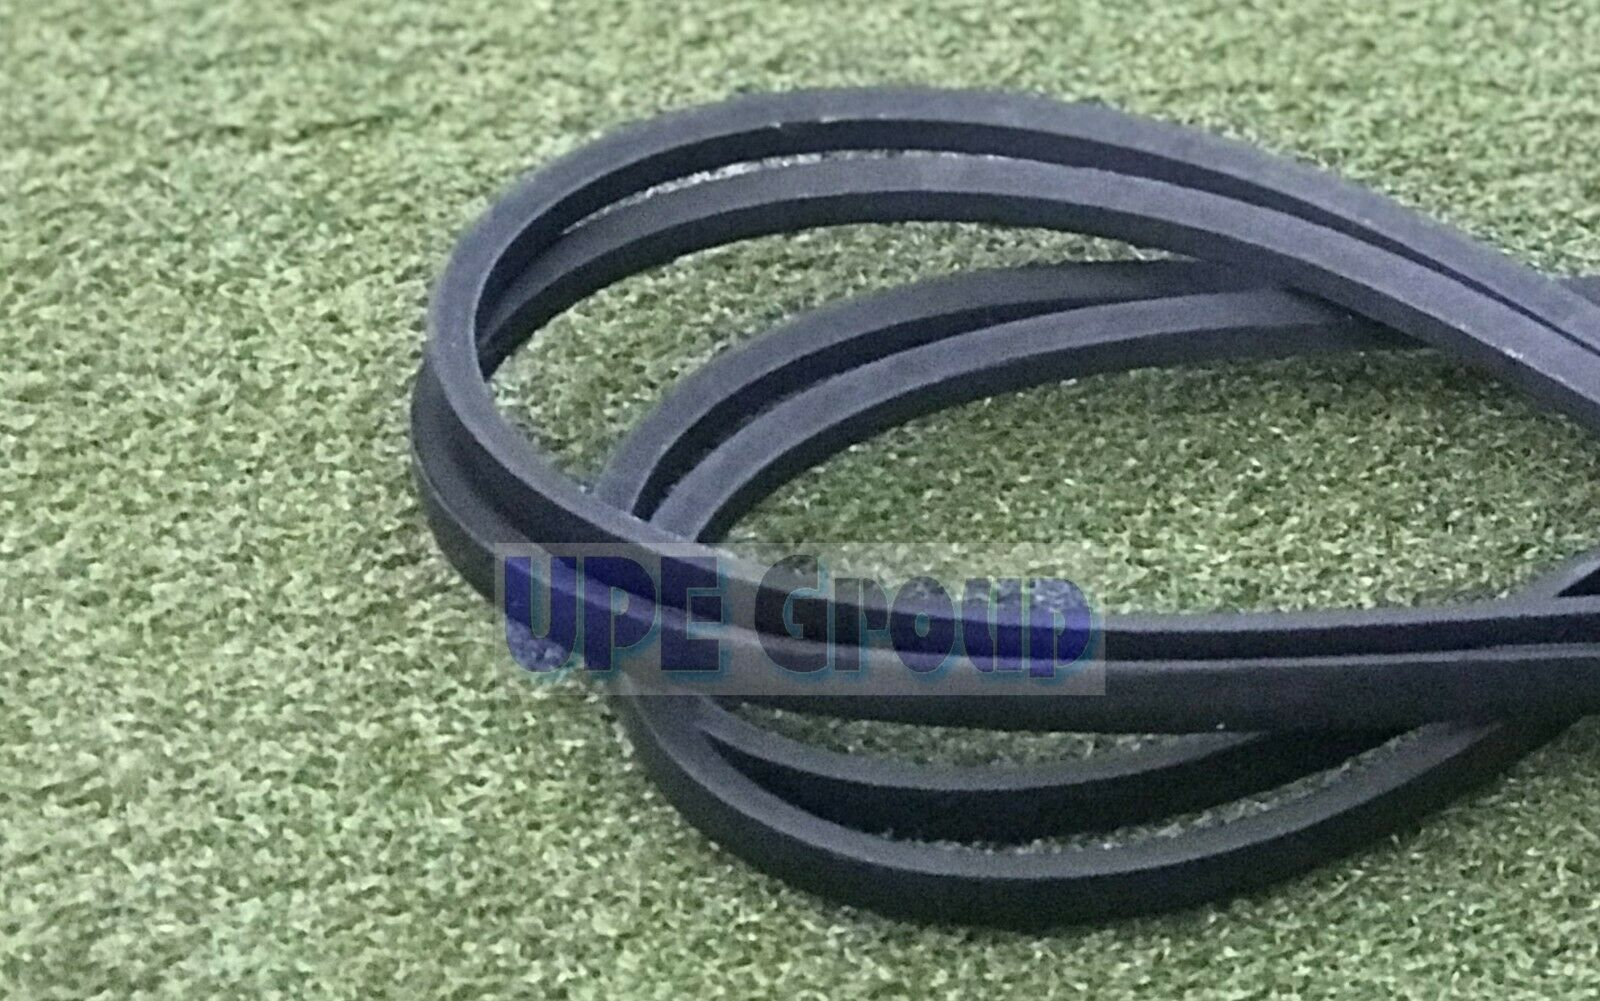 Replacement Belt For John Deere M93045 Rx63 Rx73 Rx75 Rx95 Sx75 95. Replacement Belt For John Deere M93045 Rx63 Rx73 Rx75 Rx95 Sx75 95 5 1 Of 1free Shipping See More. John Deere. Find John Deere Rx95 Belt Diagram At Scoala.co